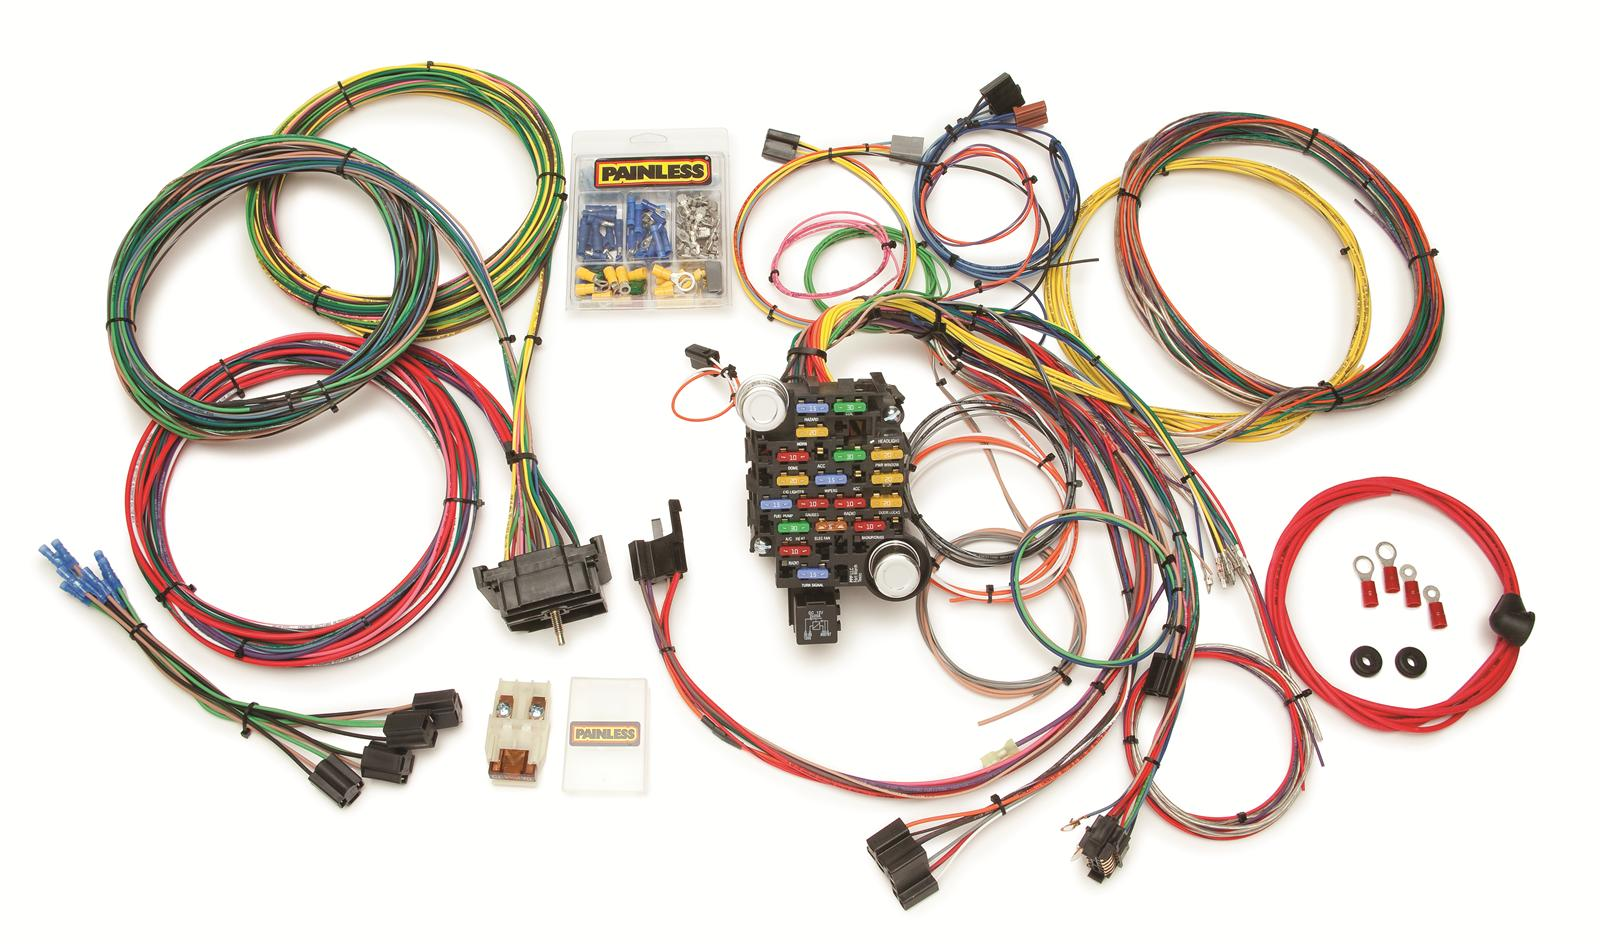 prf 10206_xl painless performance gmc chevy truck harnesses 10206 free chevy silverado wiring harness at crackthecode.co